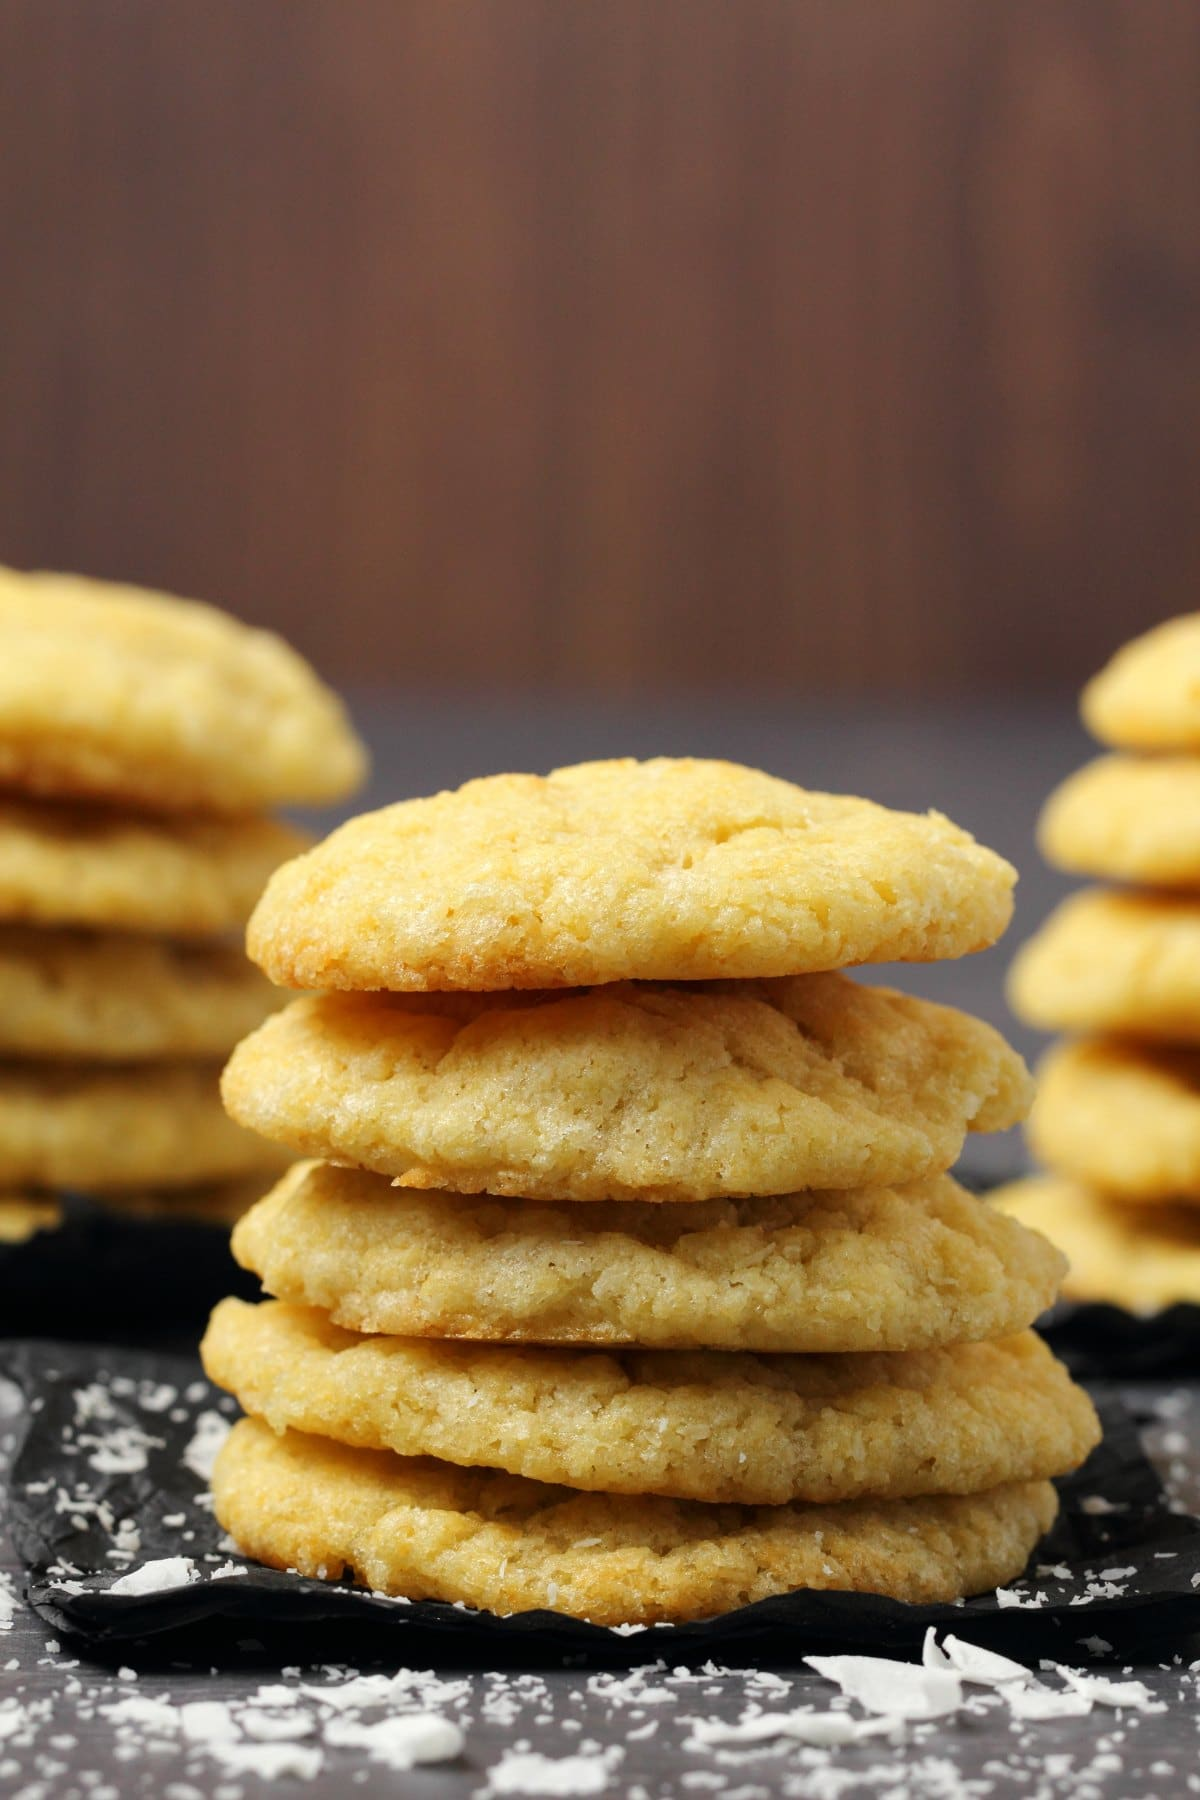 A stack of vegan coconut cookies on black tissue paper.